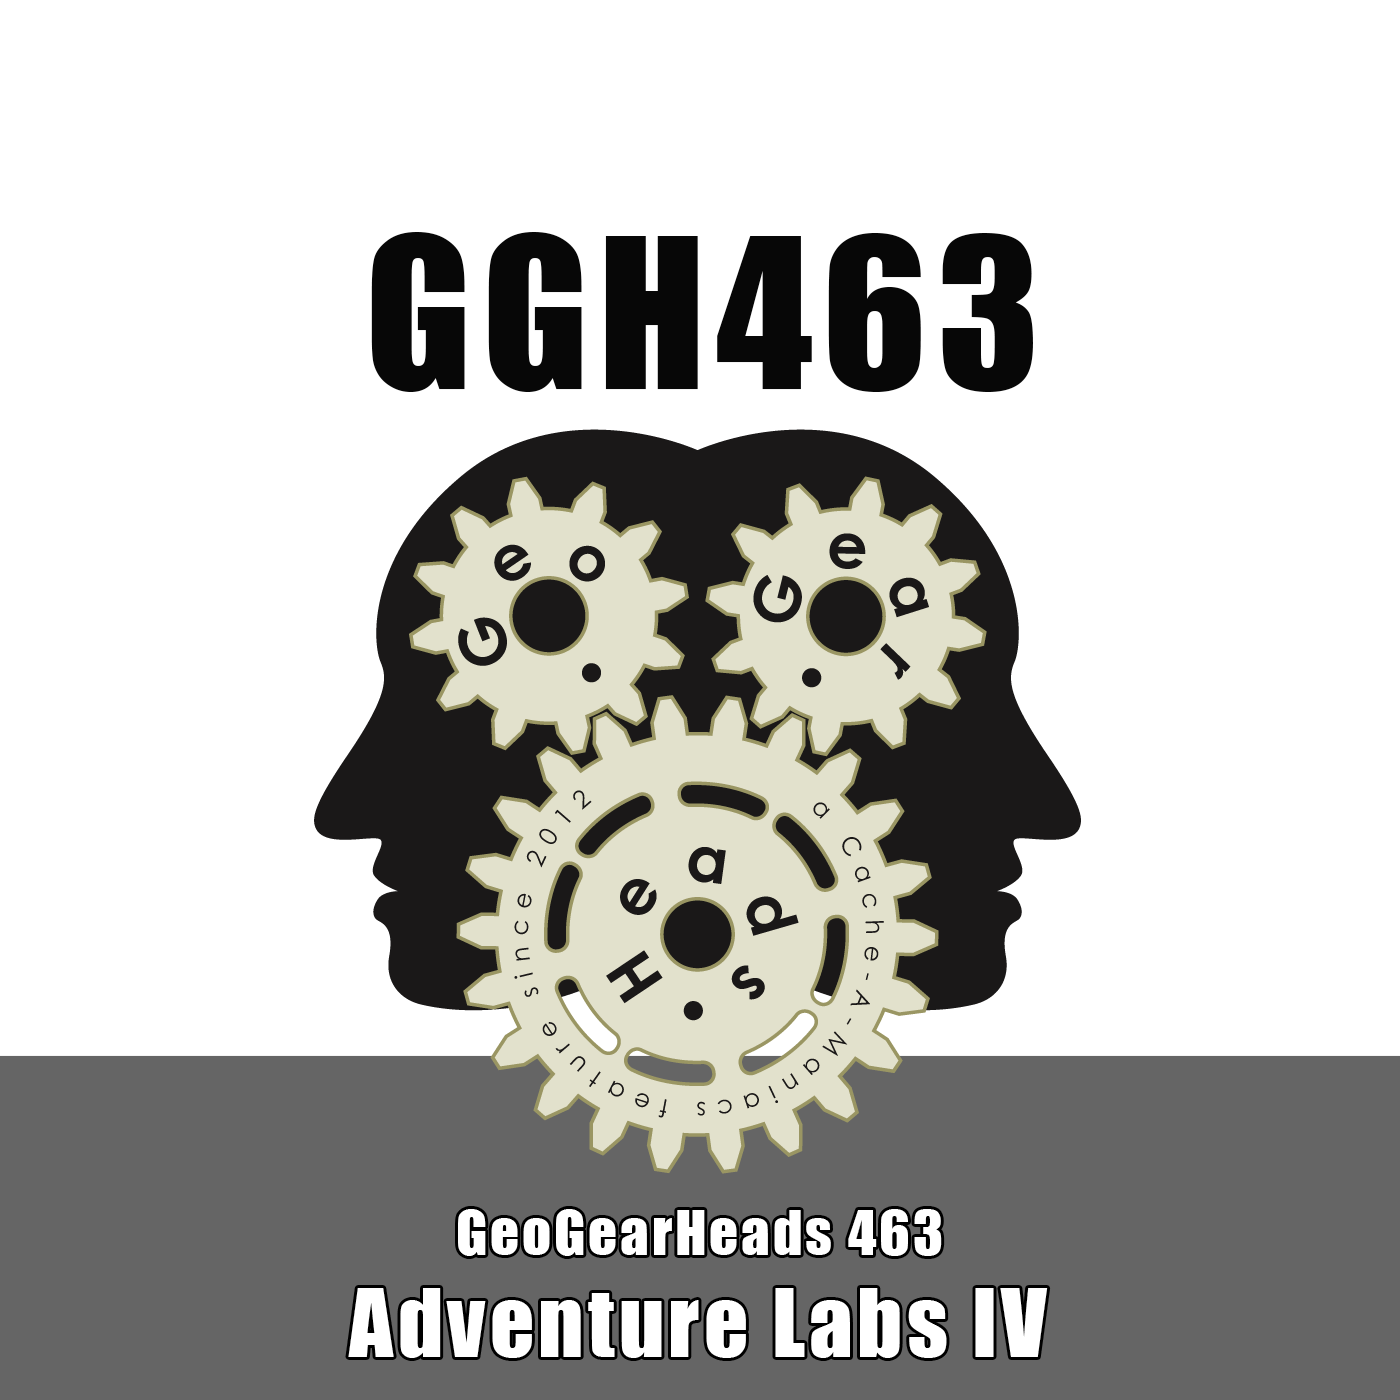 GeoGearHeads; The weekly show for Geocaching and Location-Based Gaming